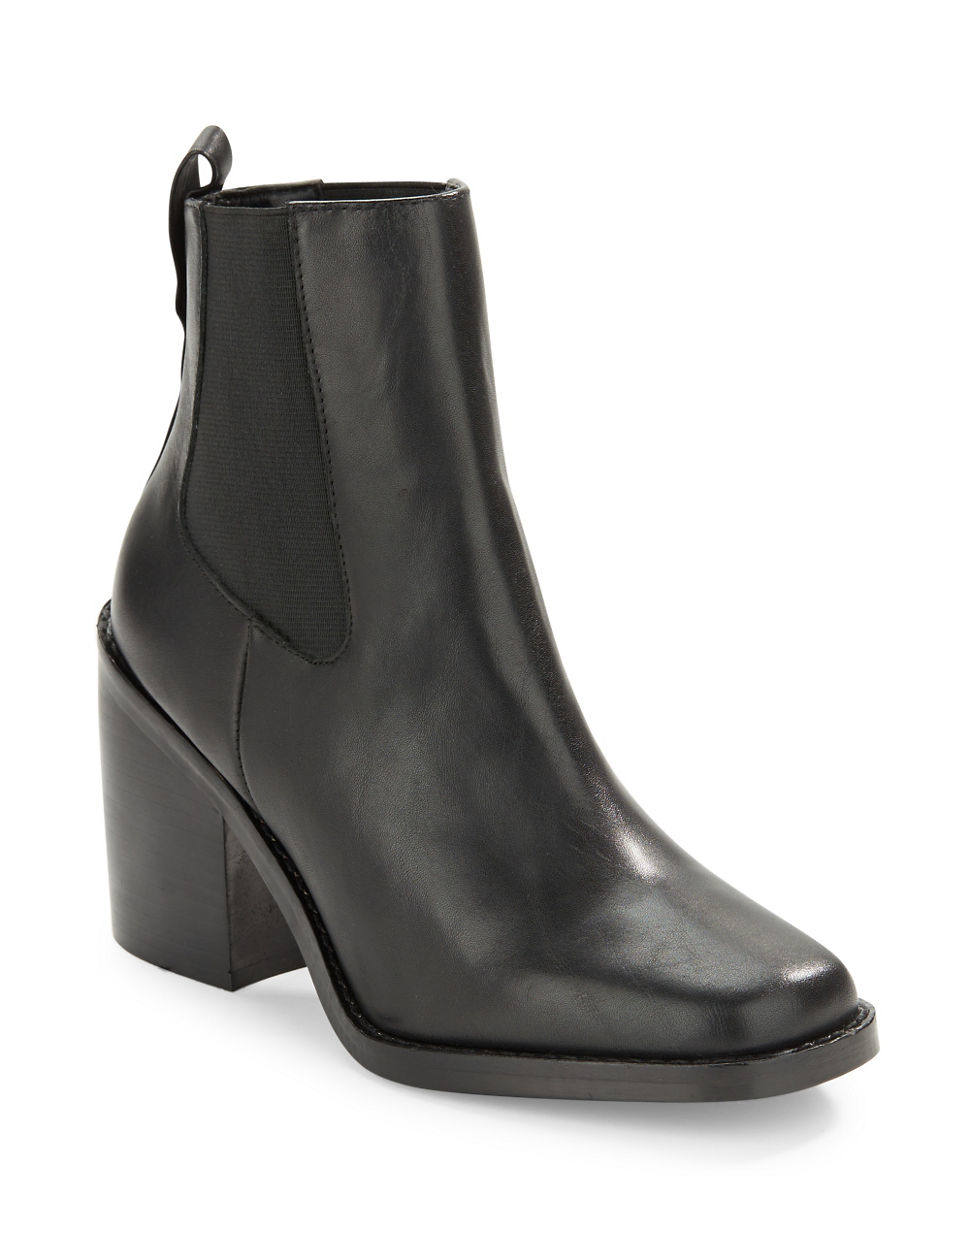 Shop Lord & Taylor Women's Shoes - Ankle Boots & Booties at up to 70% off! Get the lowest price on your favorite brands at Poshmark. Poshmark makes shopping fun, affordable & easy!